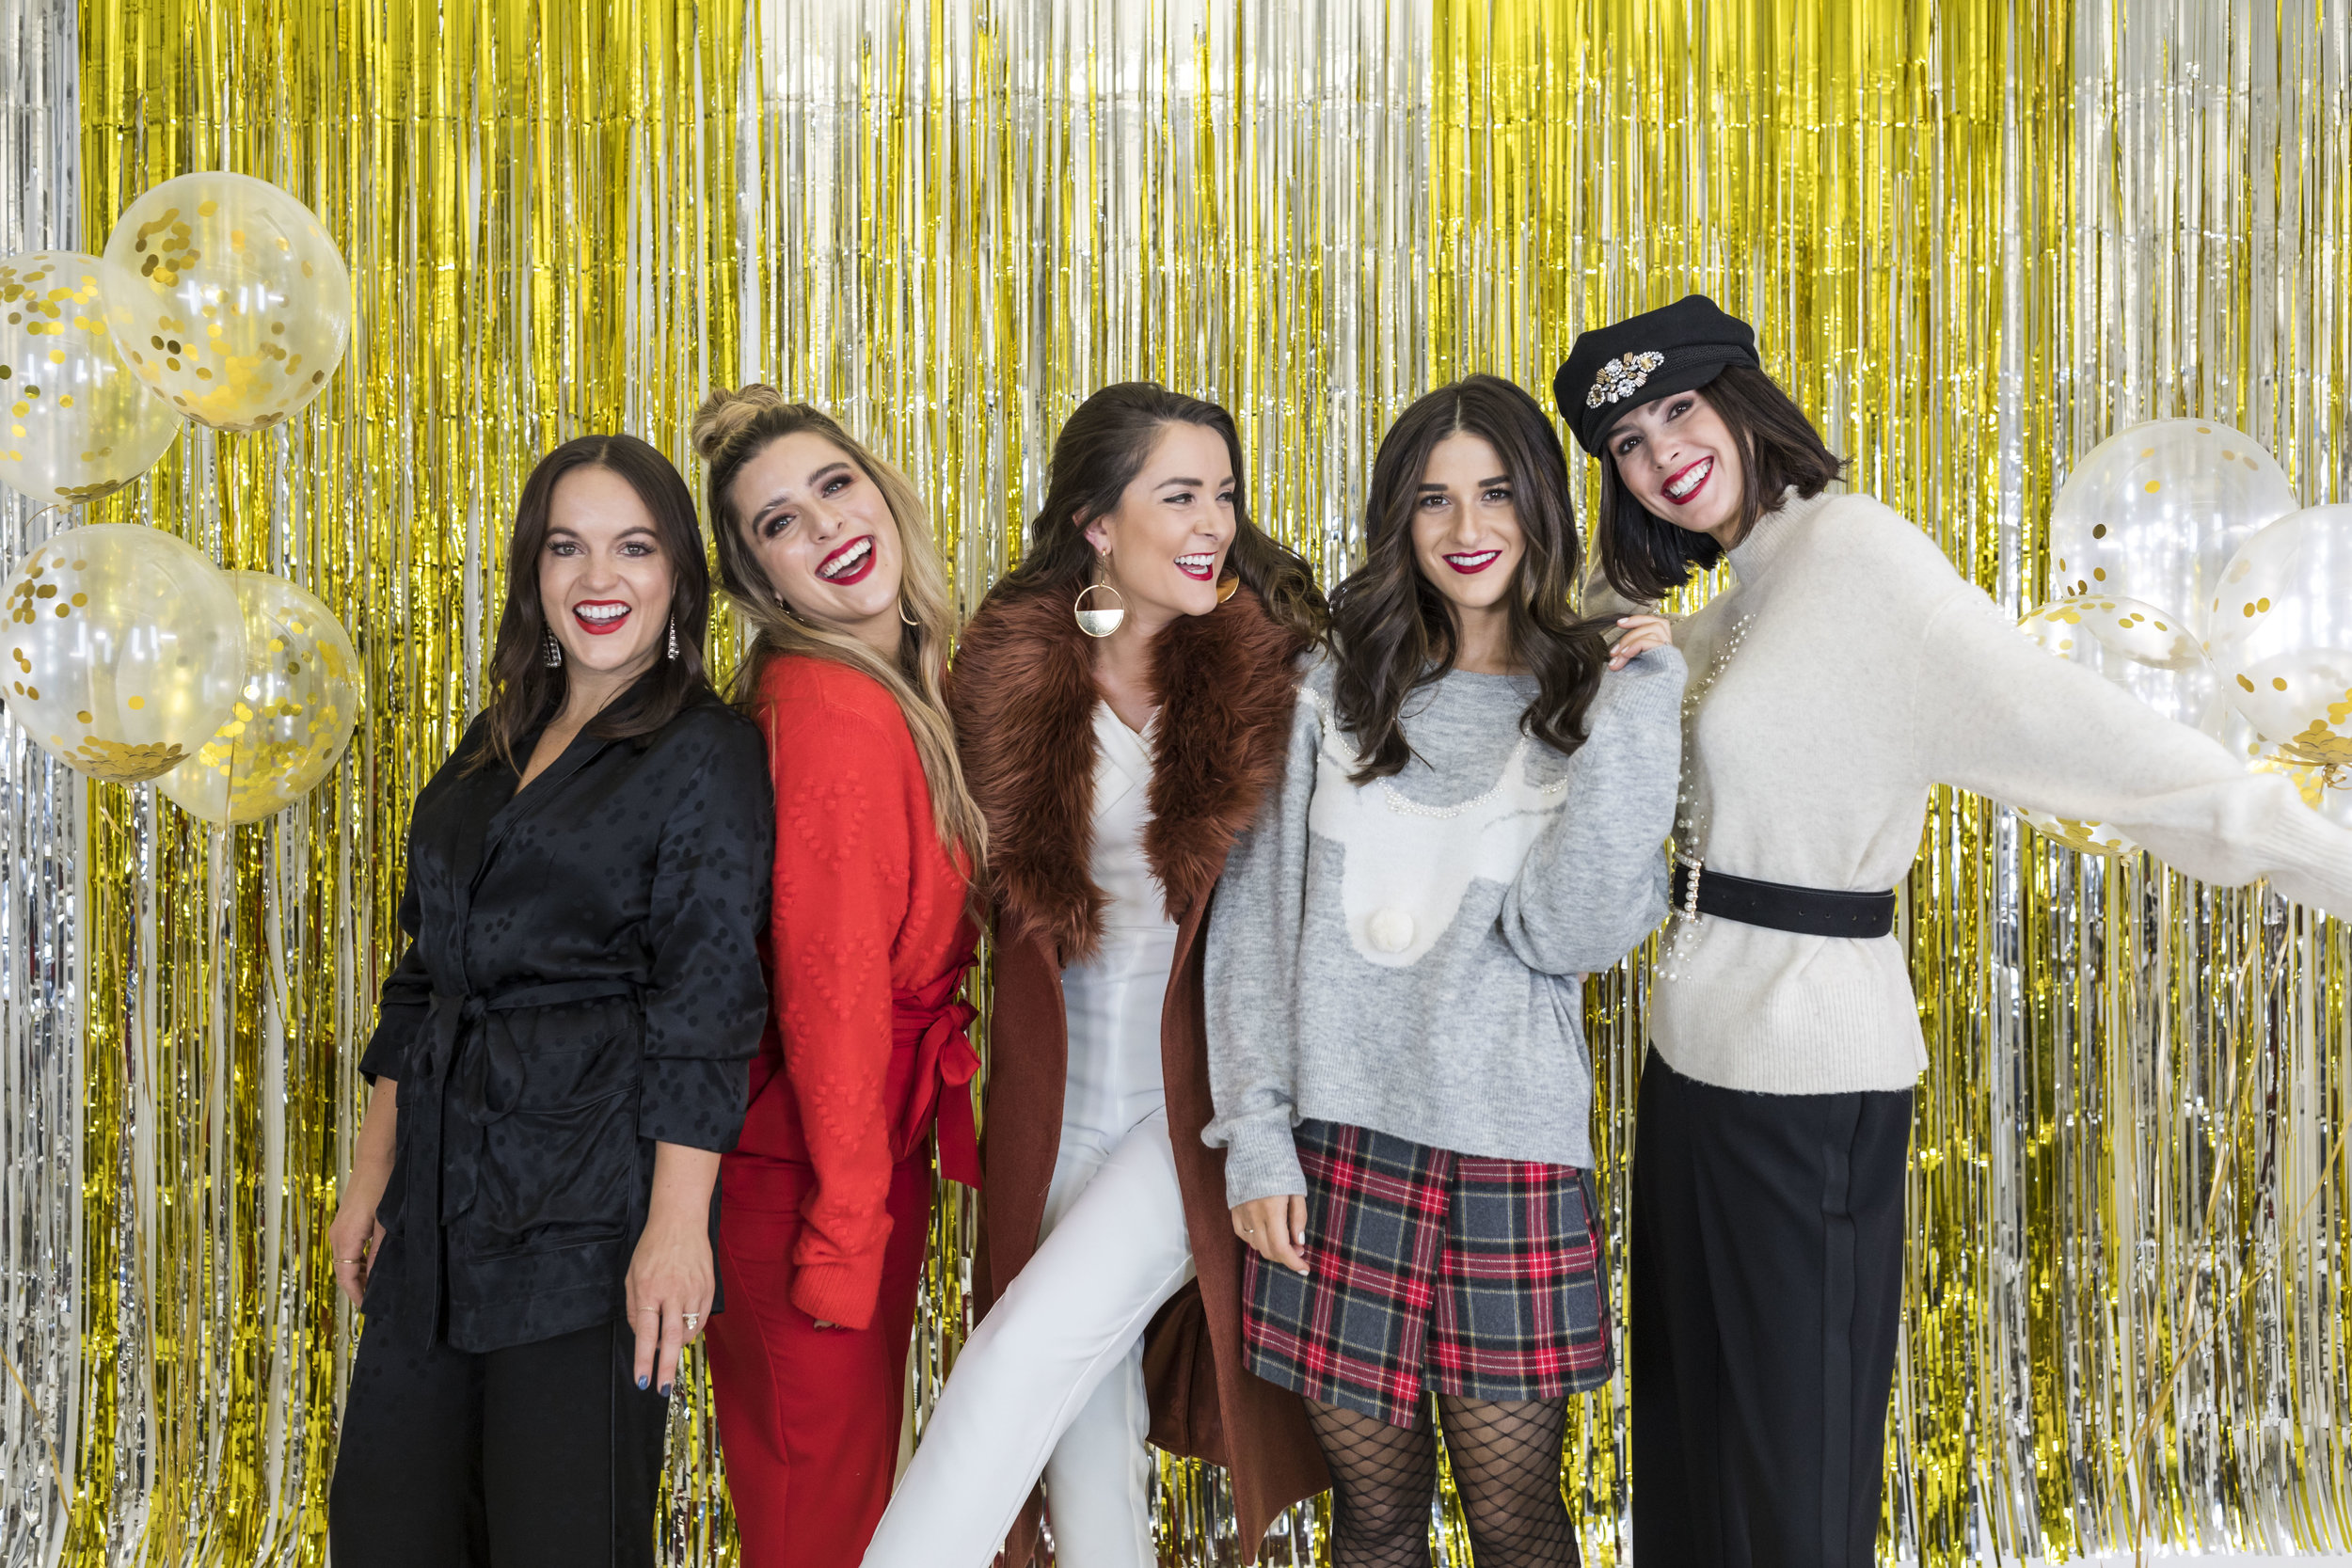 H&M Holiday Video Collab Esther Santer Fashion Blog NYC Street Style Blogger Outfit OOTD Trendy Confetti Streamers Balloons Presents Gift Wrap Shopping Wear Stylist Photoshoot Studio Videographer DryBar Hairstyle Friends Girls Lace Accessories Jewelry.jpg